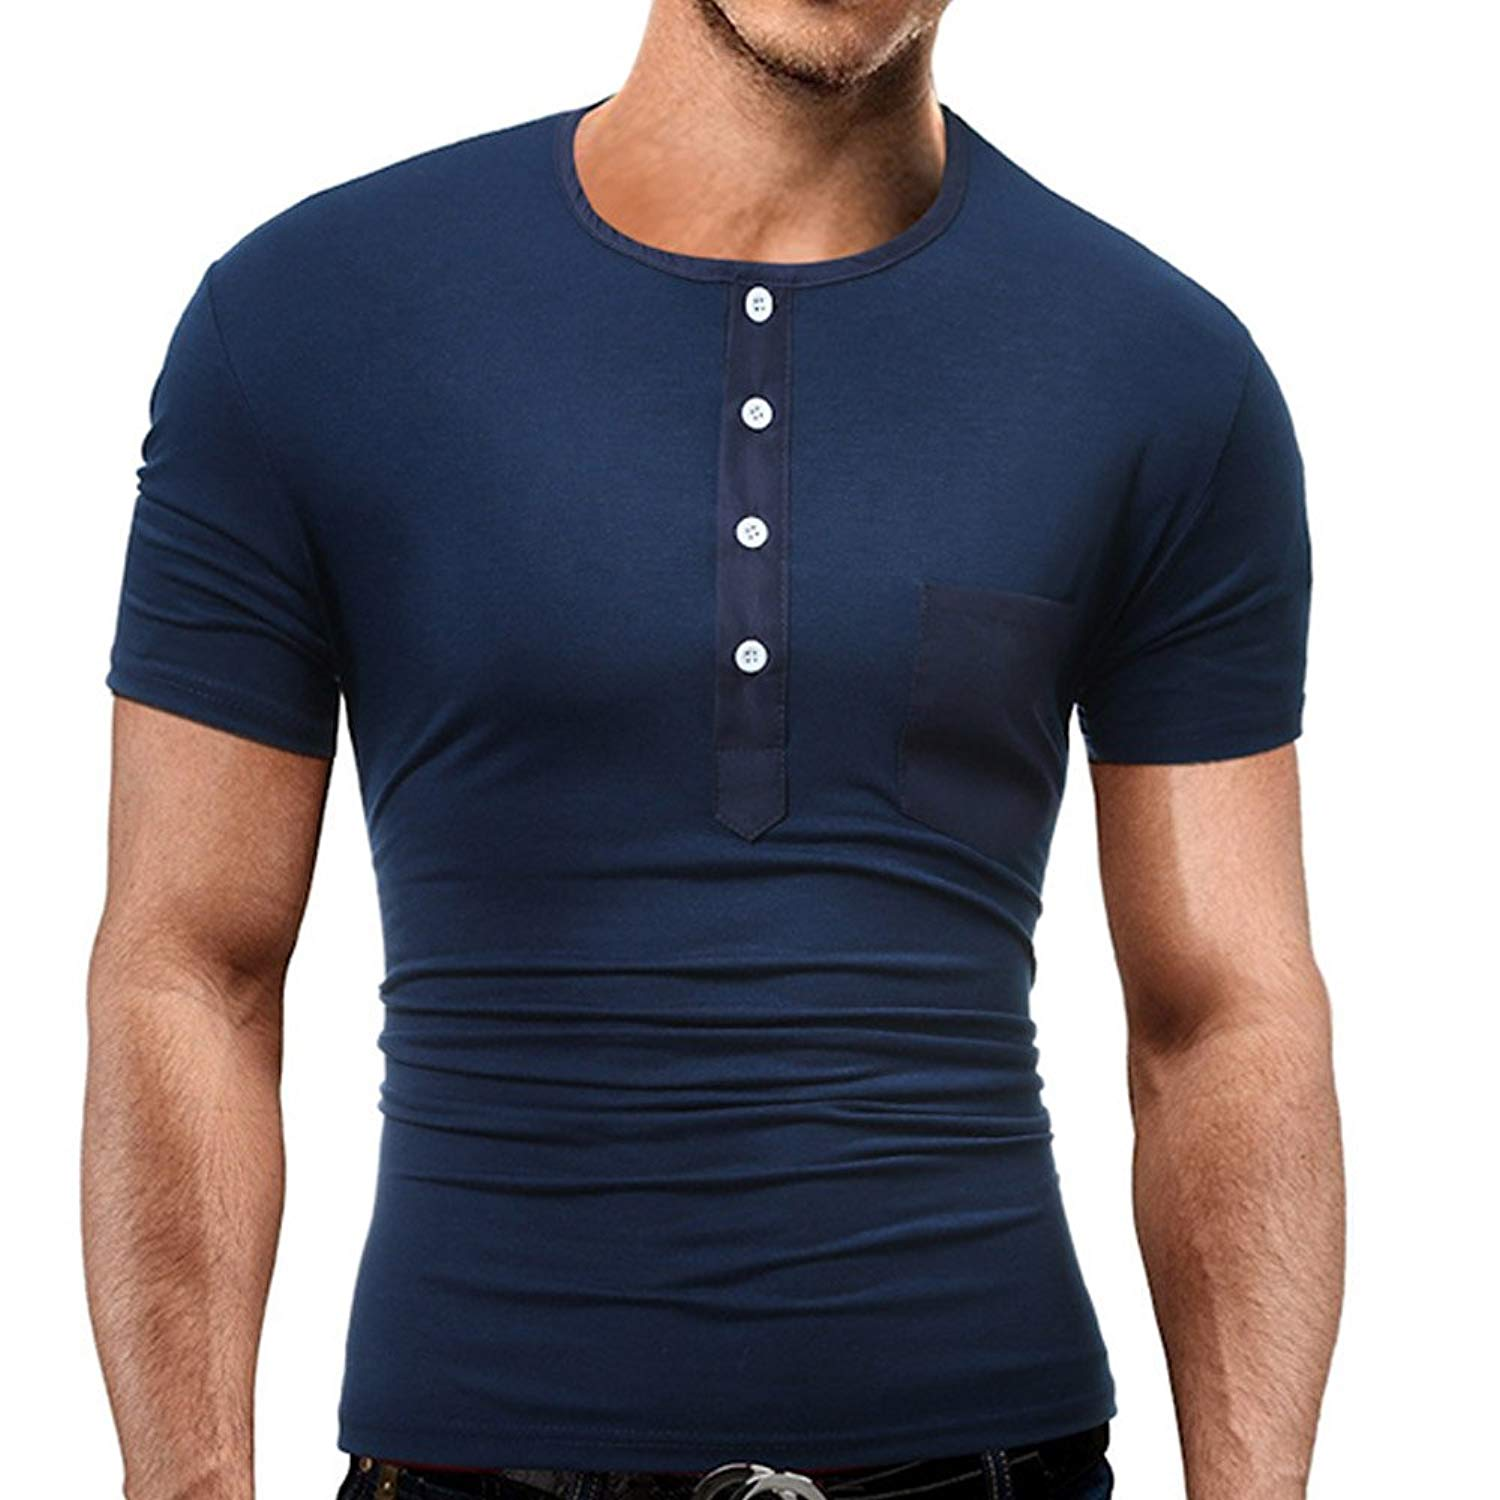 a624c5936e94 Get Quotations · JXEWW Men s Cotton Slim Fit Solid Jersey Henley Shirt  Short Sleeve Button Placket O-Neck